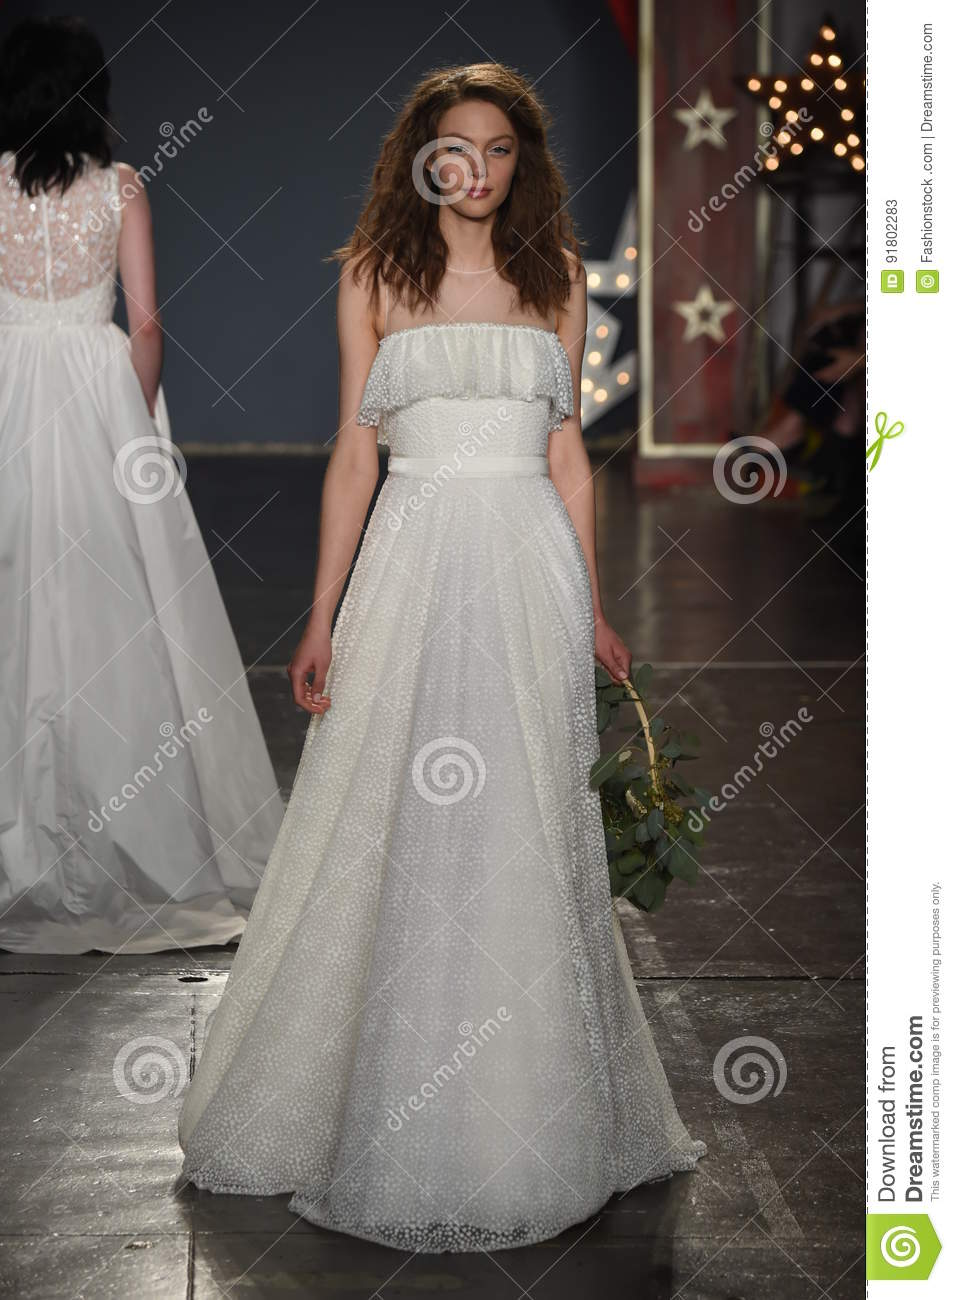 44911cf082eb A model walks the runway during the Jenny Packham Spring Summer 2018 bridal  collection fashion